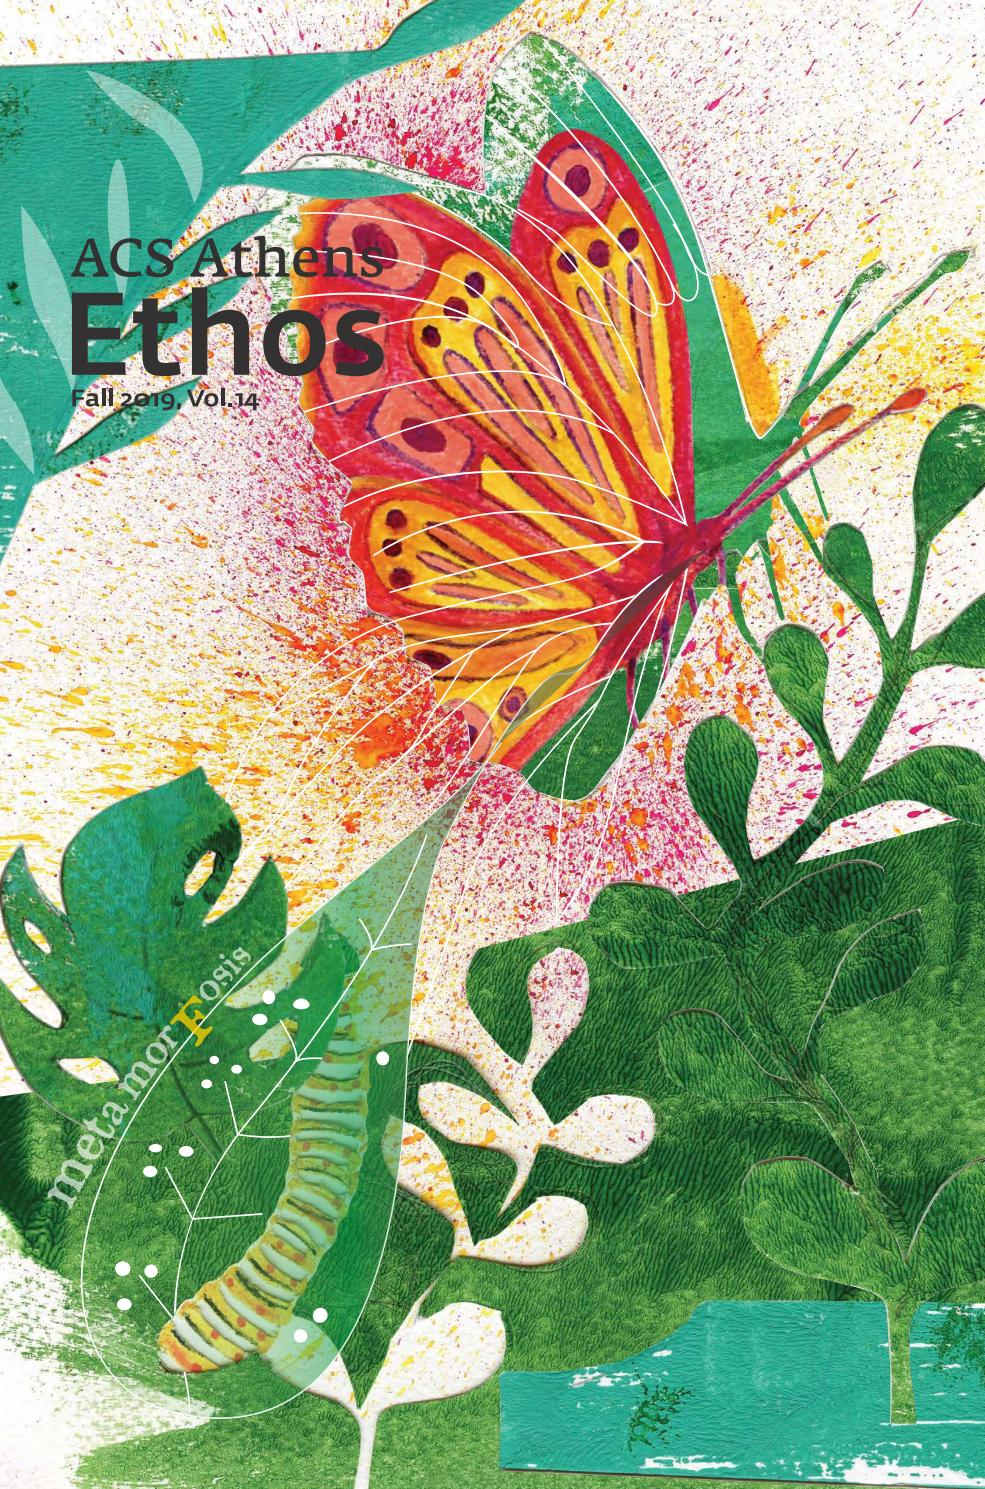 36 best flower arrangement ideas and designs for 2019.htm acs athens ethos  fall 2019 by acs athens issuu  acs athens ethos  fall 2019 by acs